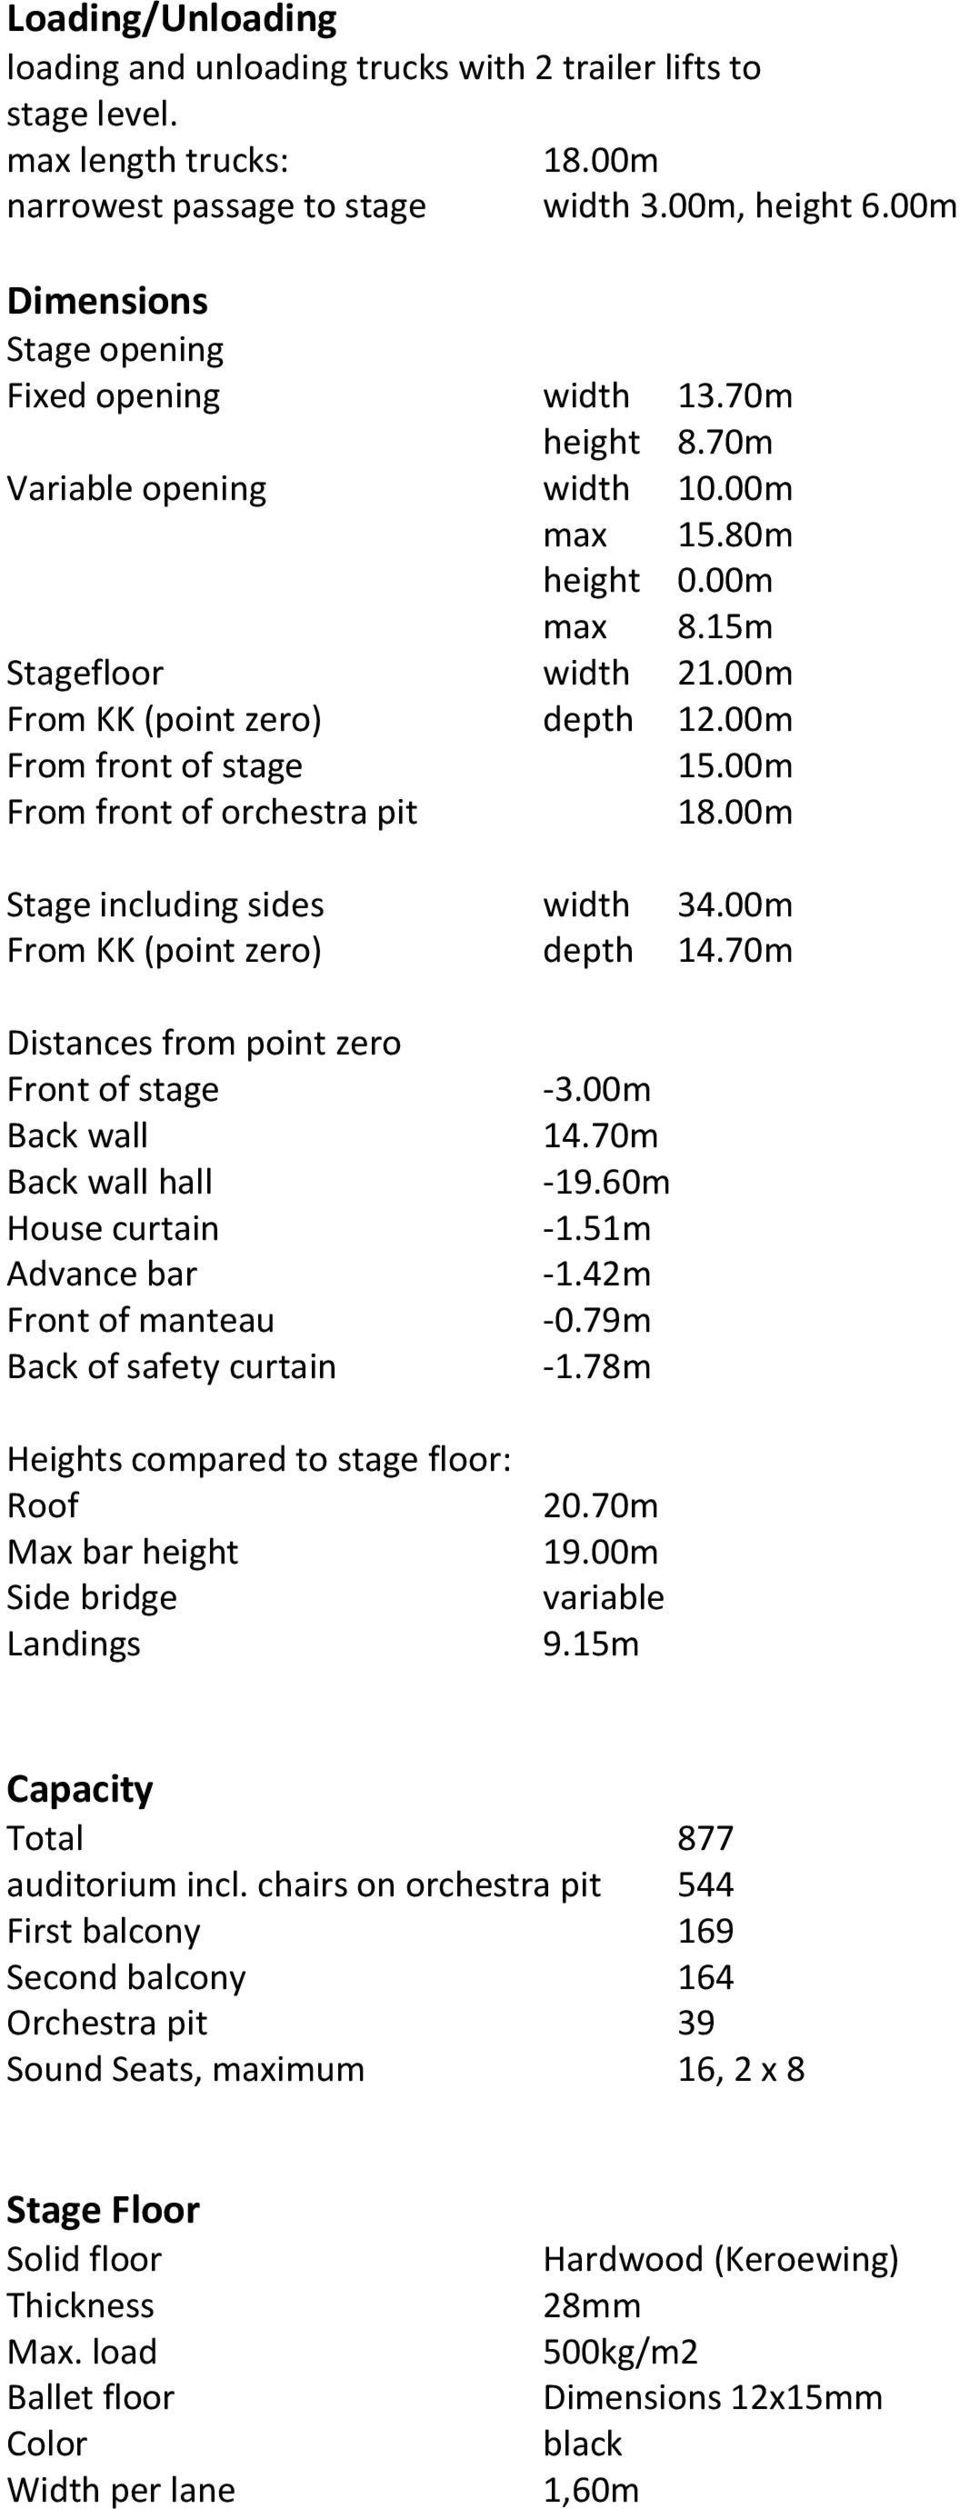 00m From front of stage 15.00m From front of orchestra pit 18.00m Stage including sides width 34.00m From KK (point zero) depth 14.70m Distances from point zero Front of stage -3.00m Back wall 14.